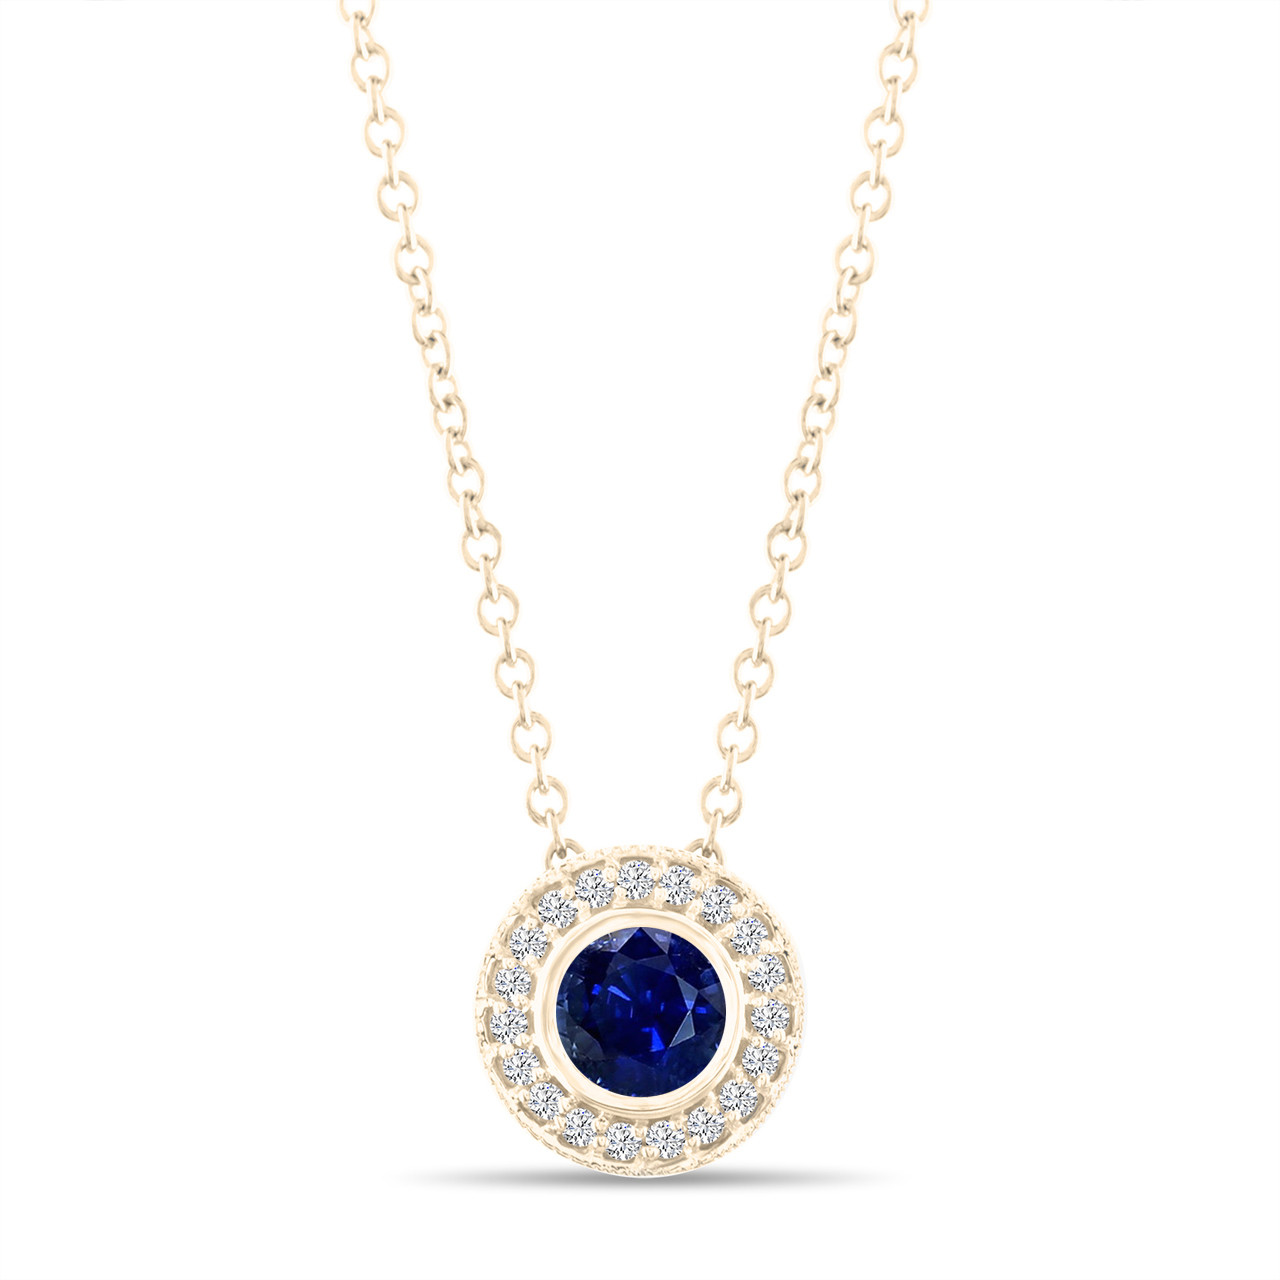 Gold blue sapphire pendant necklace with diamonds pendant 045 gold blue sapphire pendant necklace with diamonds pendant 045 carat halo bezel and micro pave set handmade aloadofball Image collections